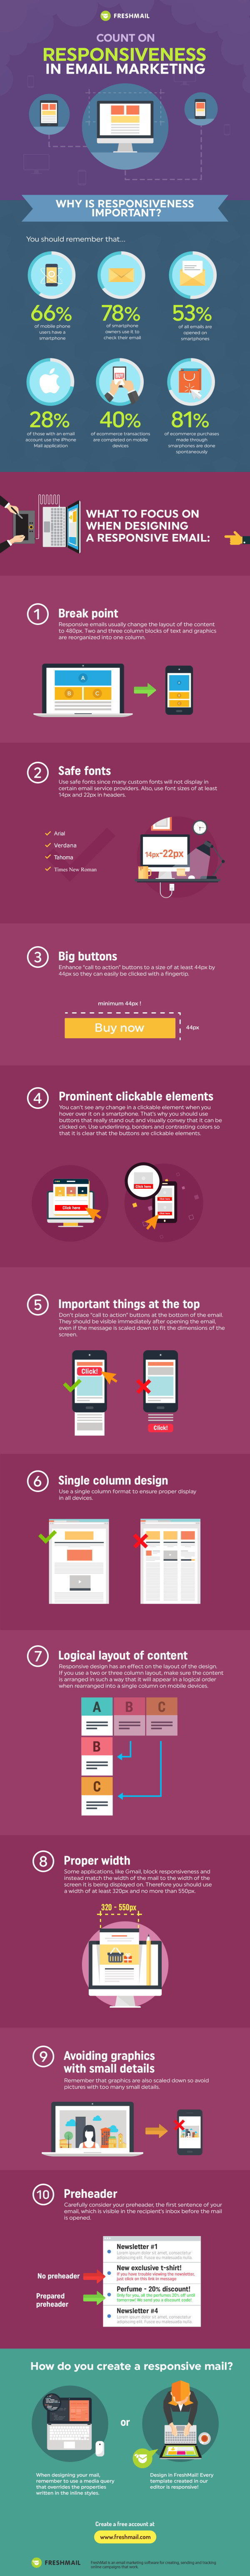 Make responsive email newsletters! #infographic